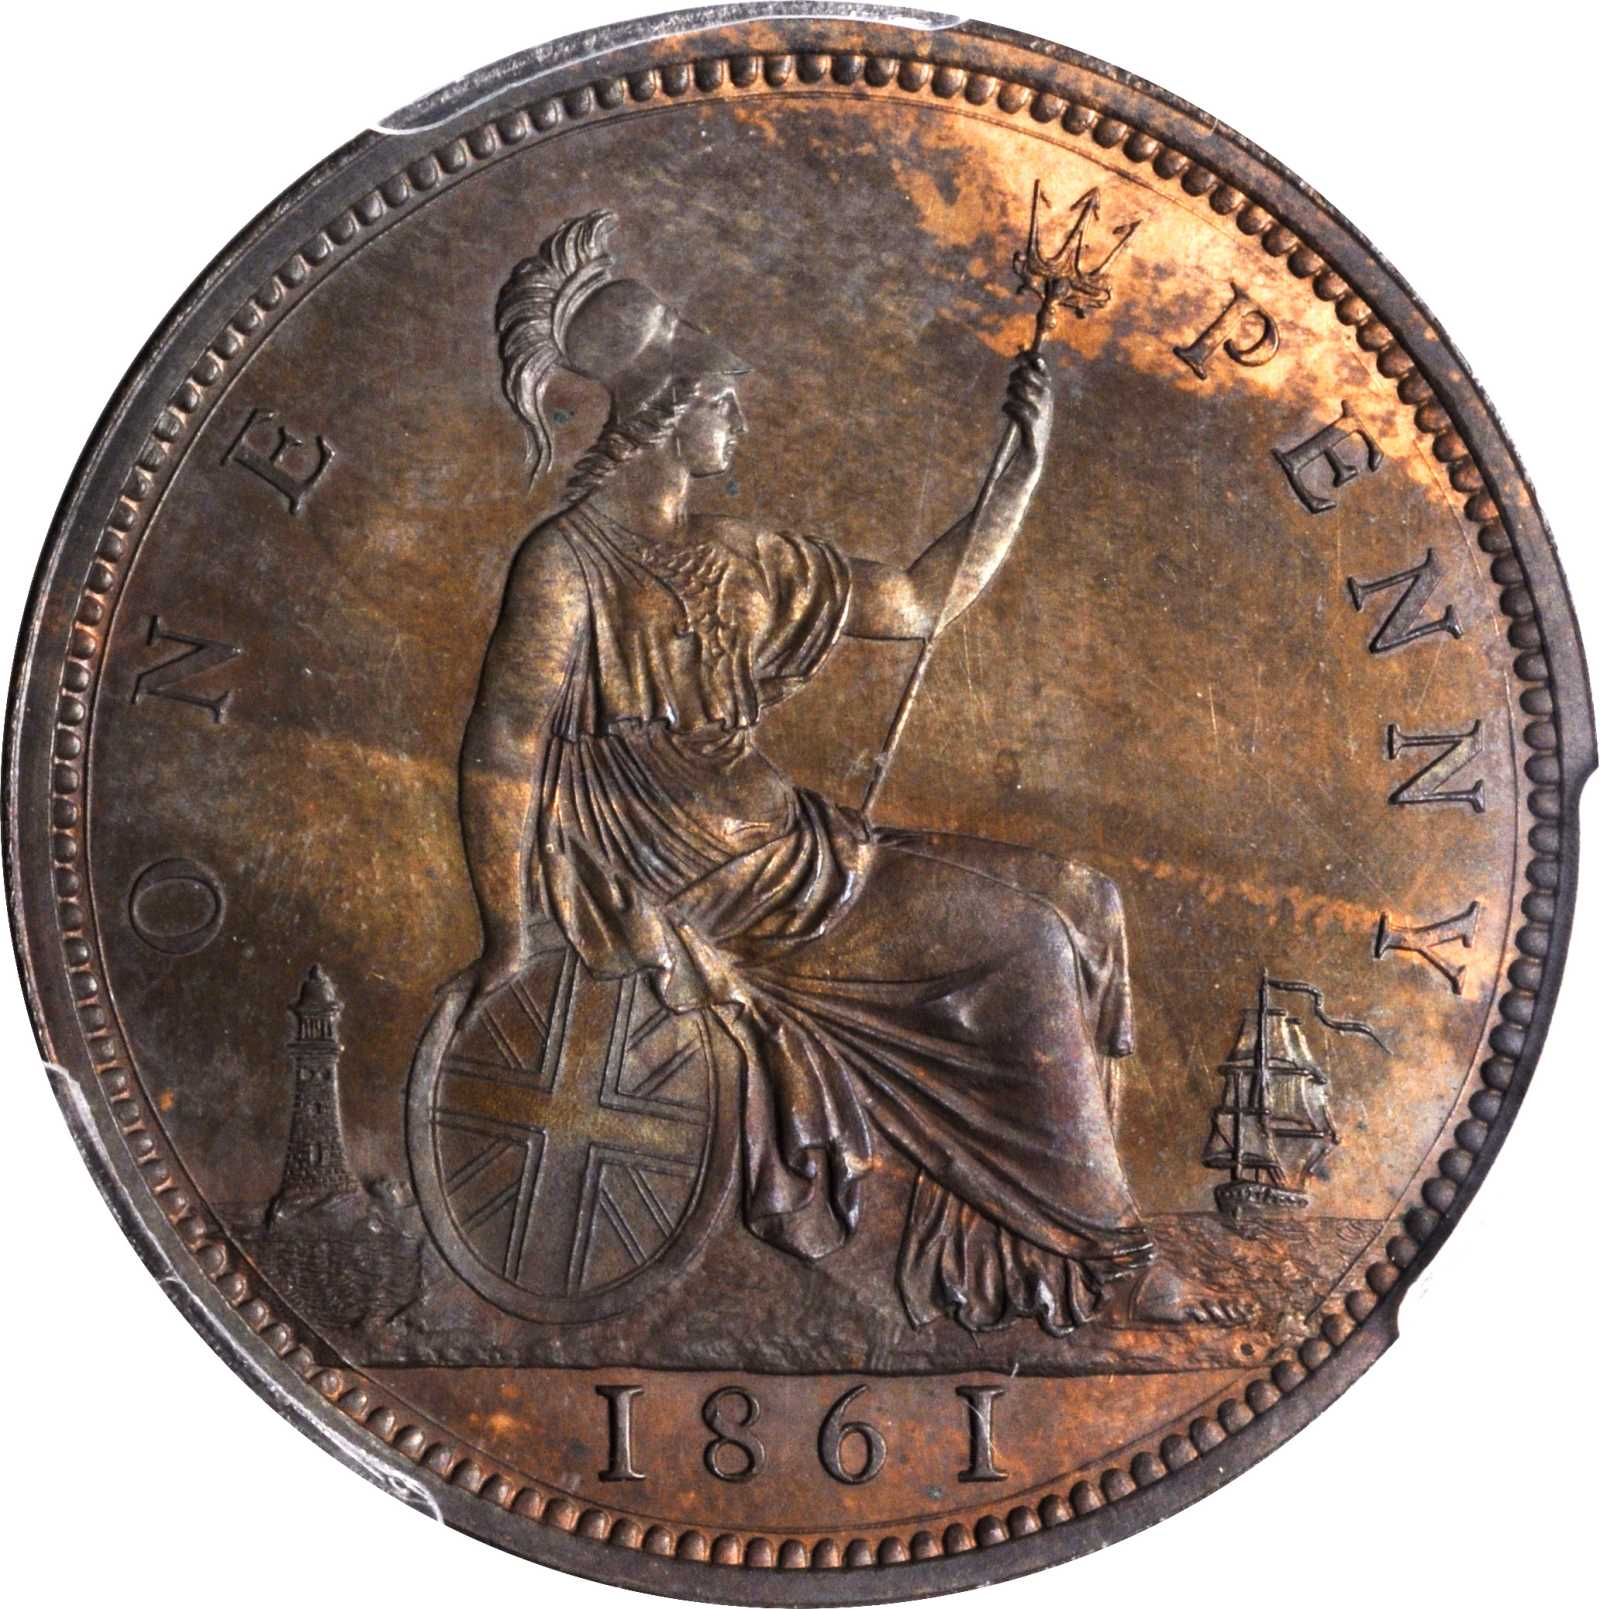 Penny (Britannia, third design): Photo Great Britain 1861 penny